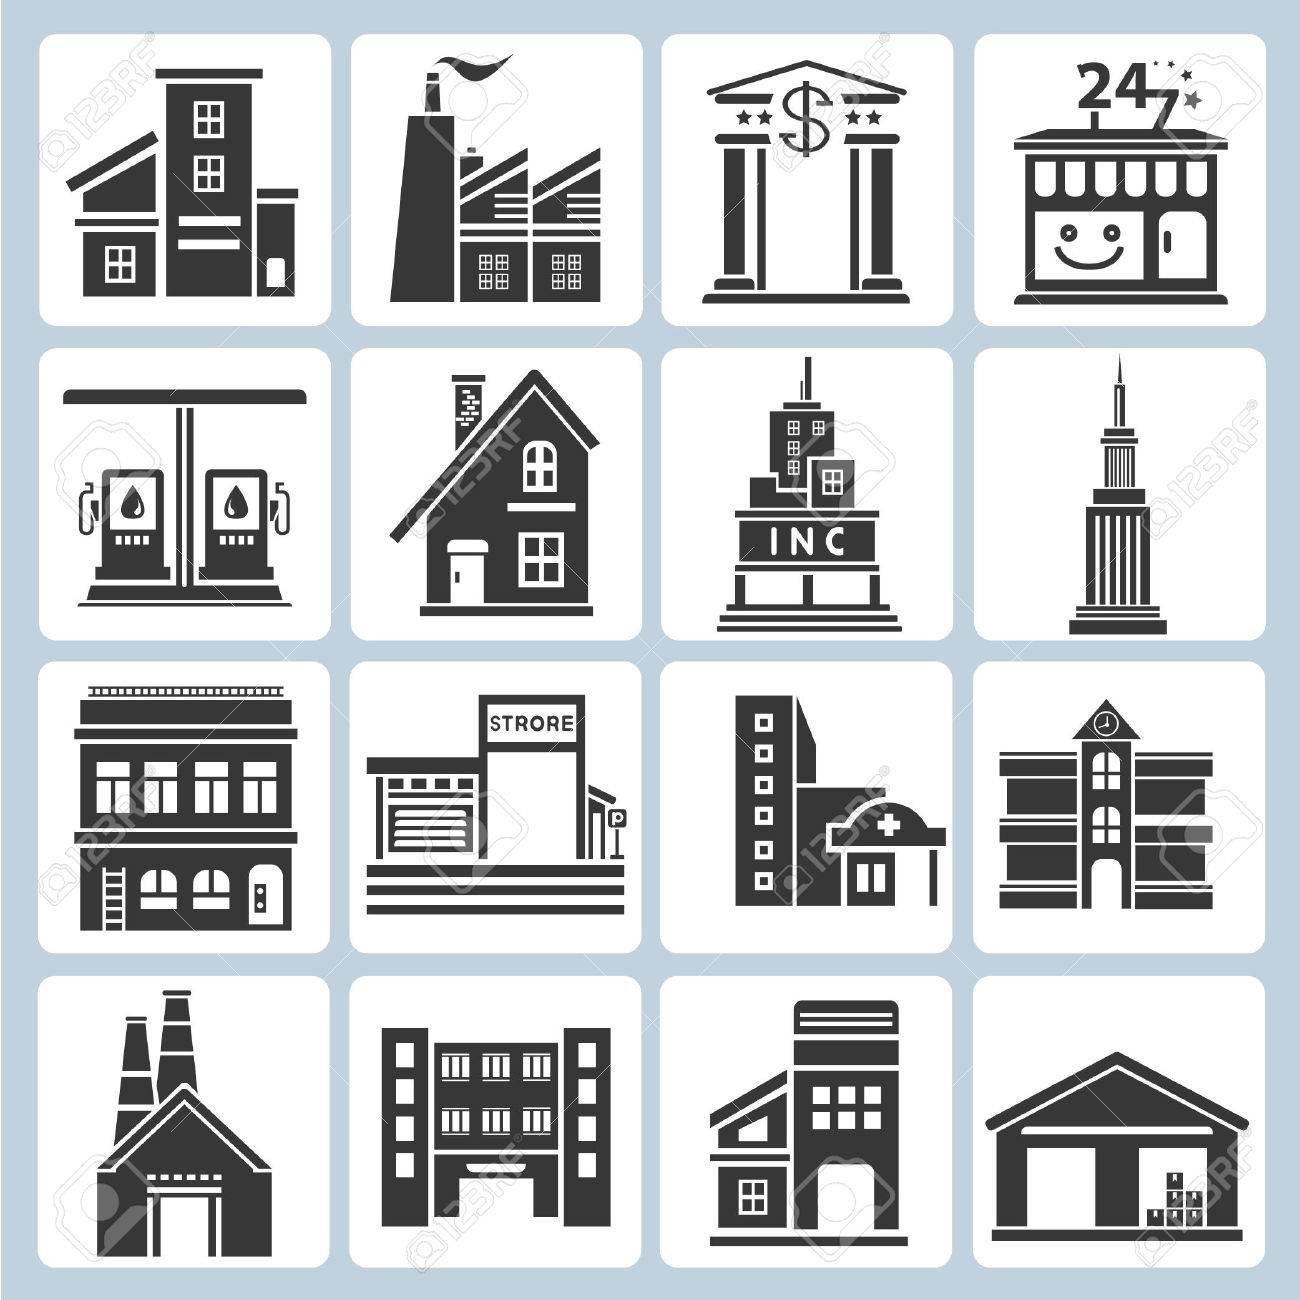 building icons Stock Vector - 23229134